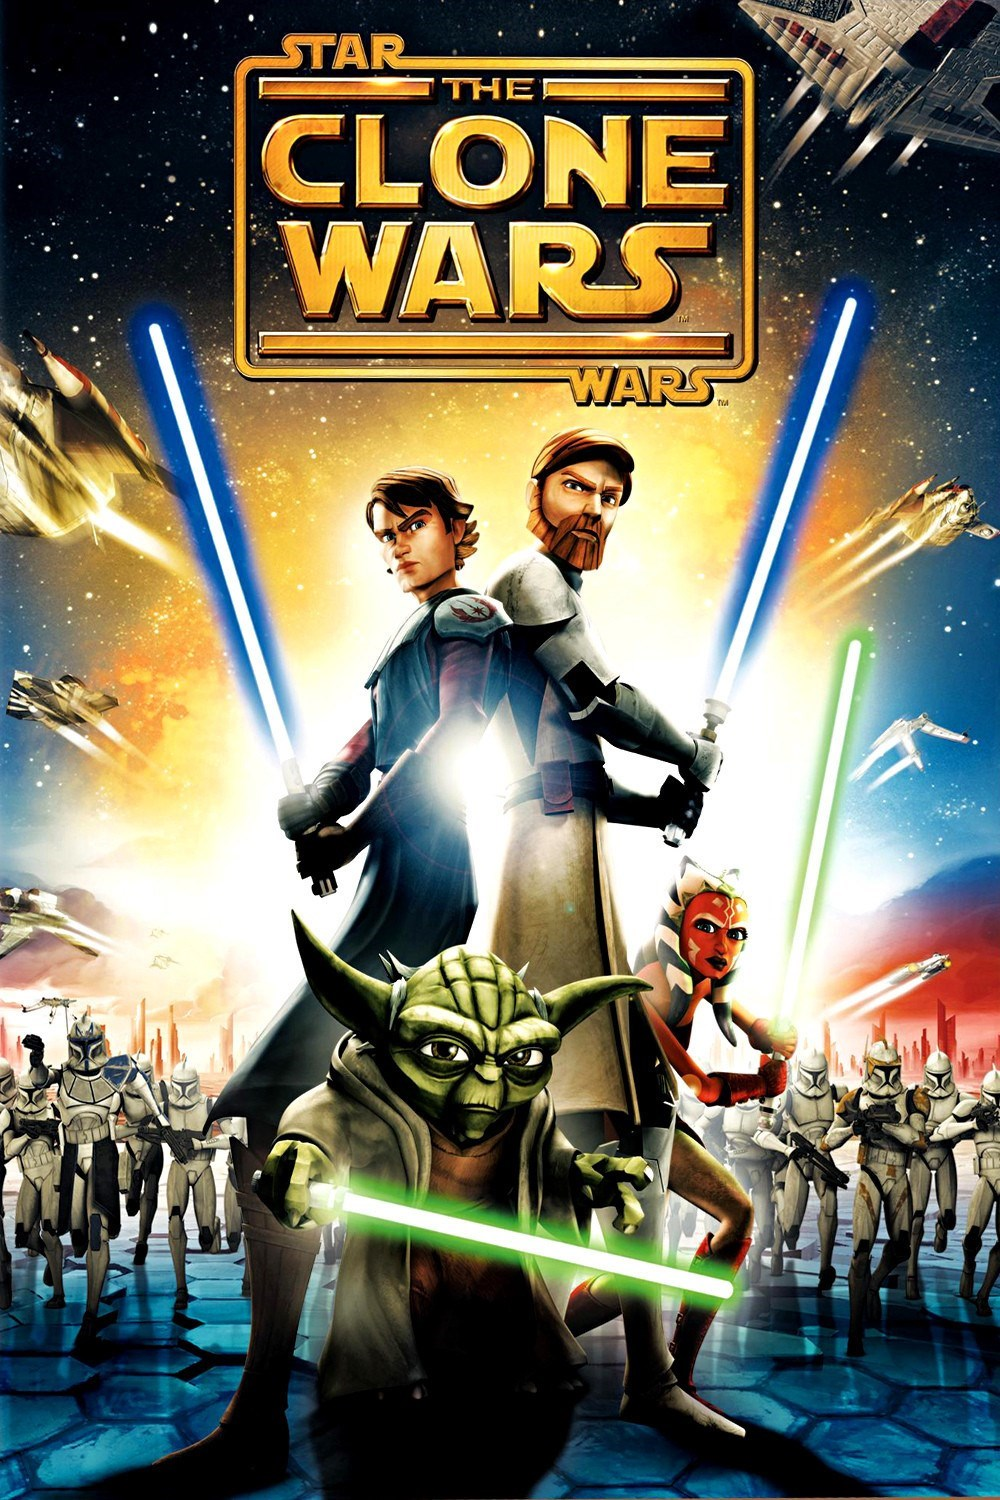 Star Wars: The Clone Wars 2008